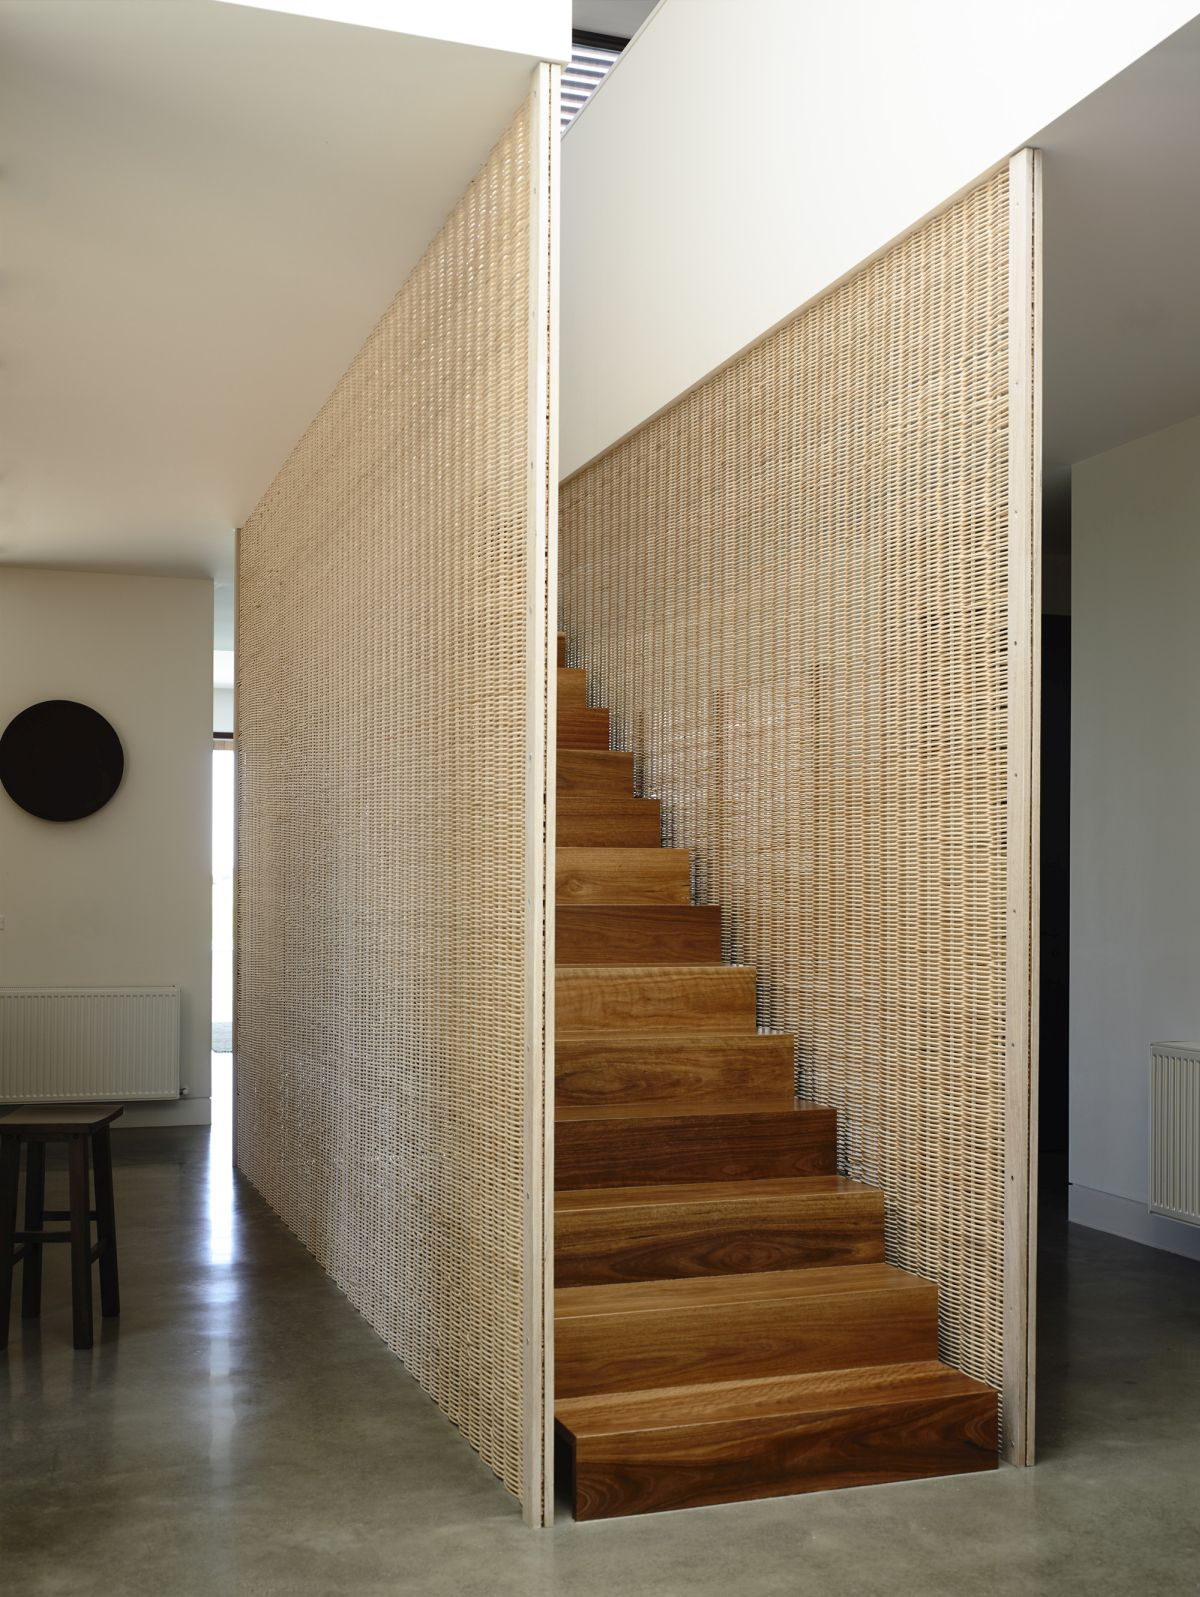 Traditional costal approach to staircase wall